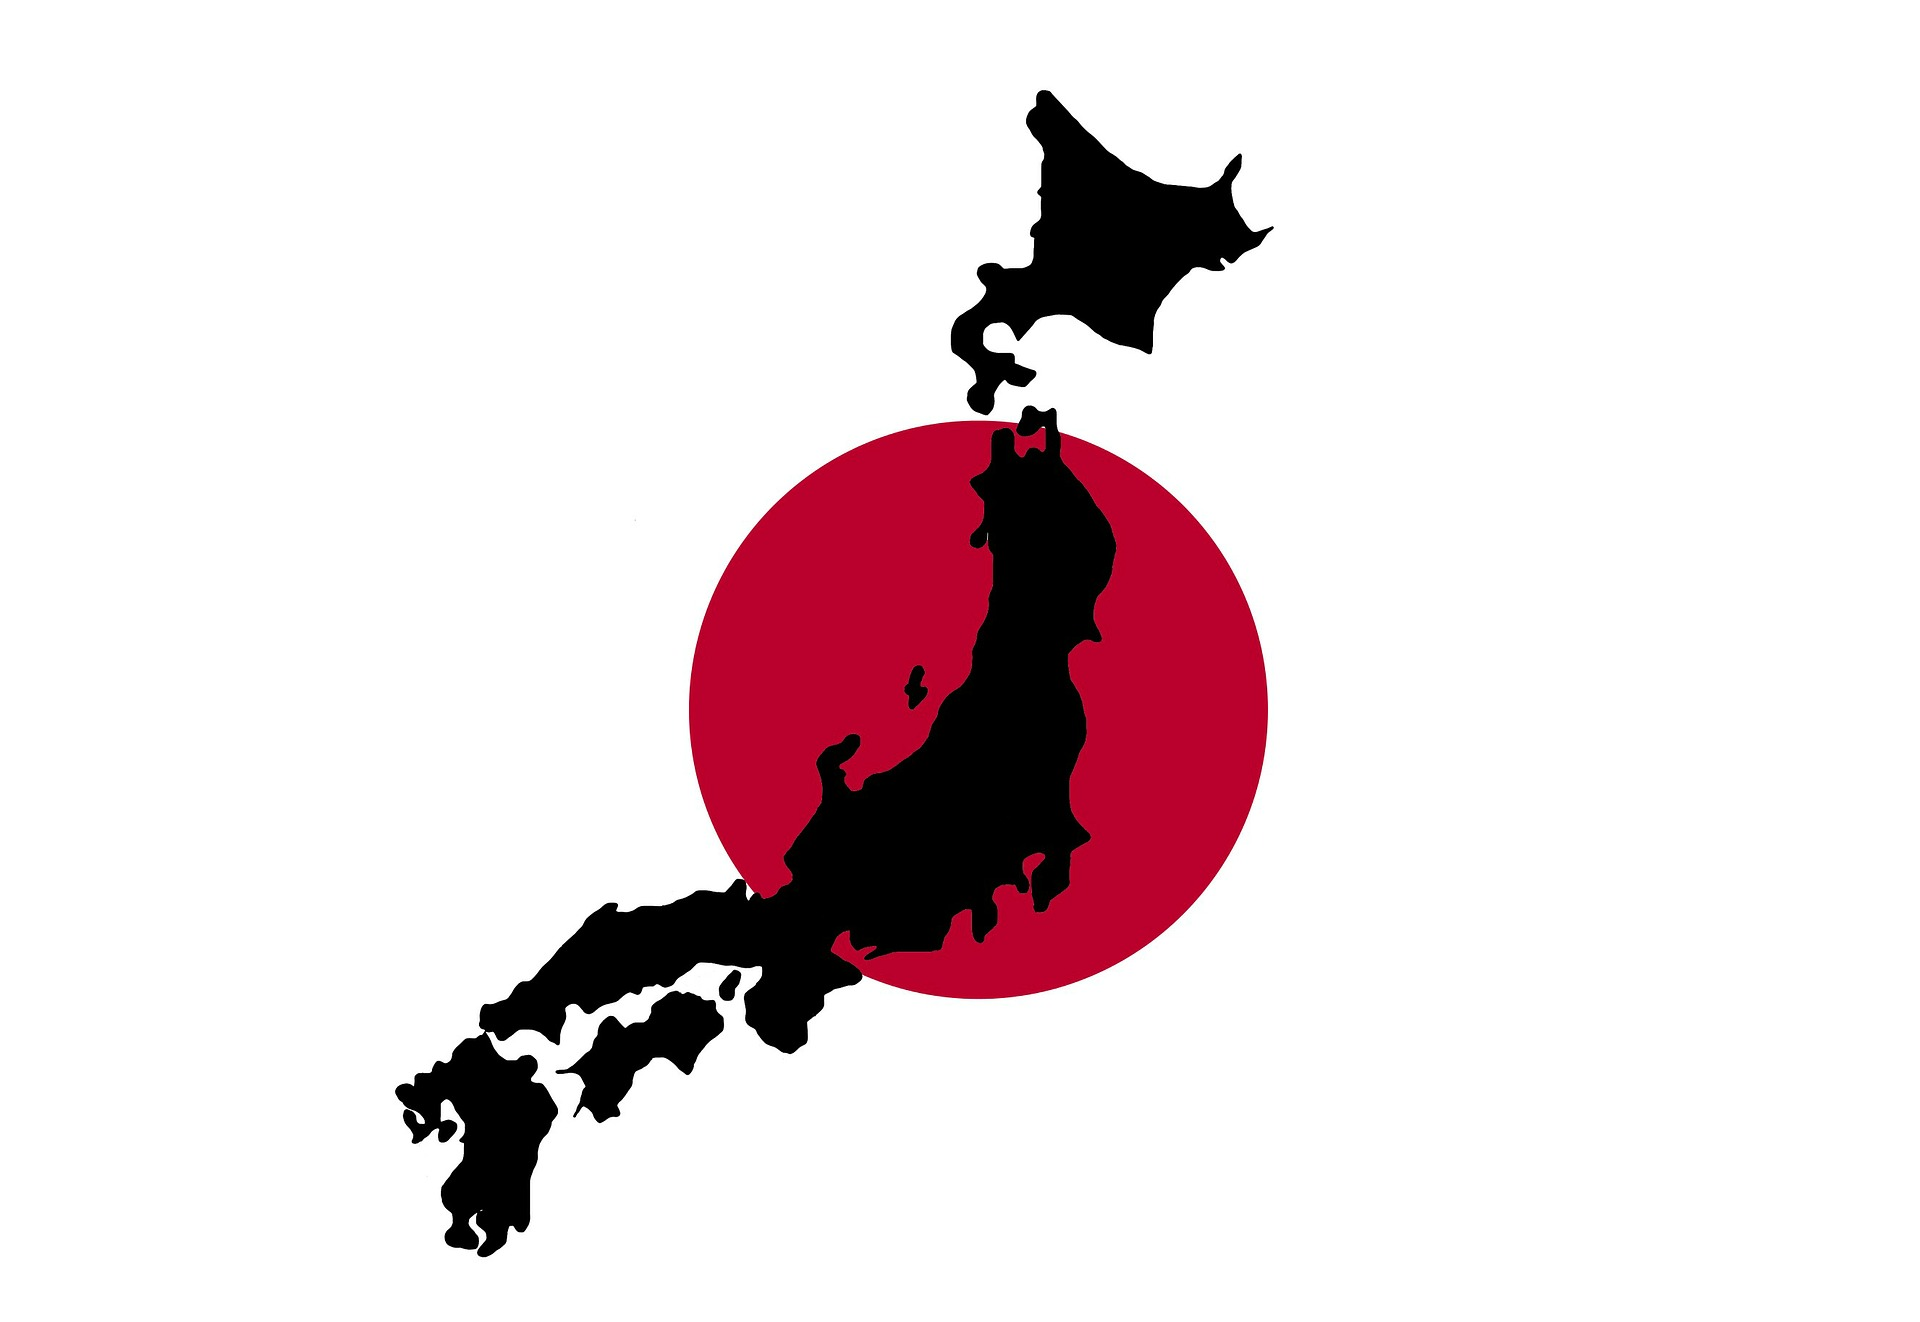 love japan 1 of 3 reaching the nations among us